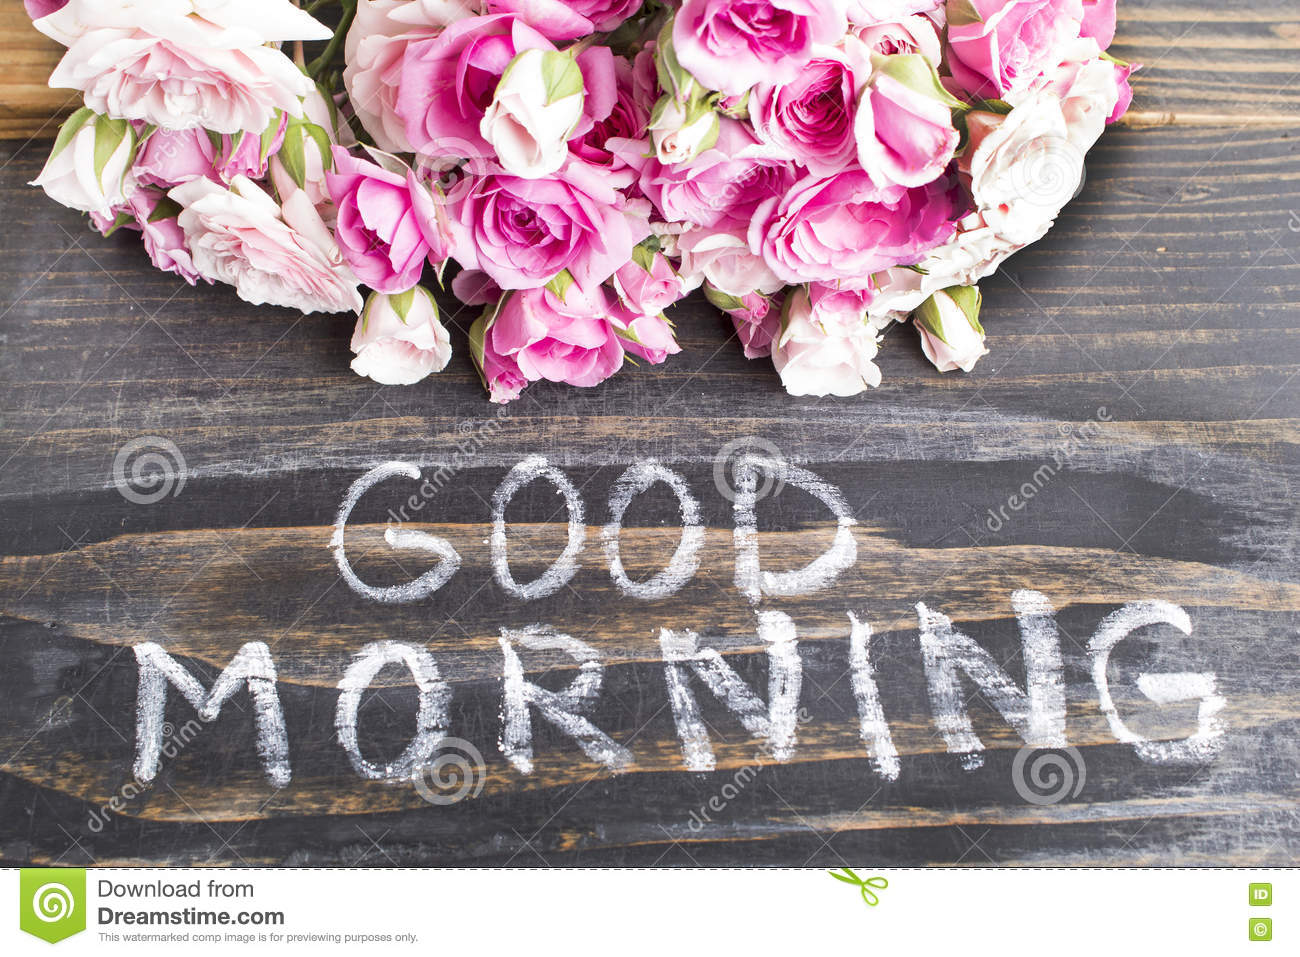 Words Good Morning With Pink Roses On A Rustic Wooden Background